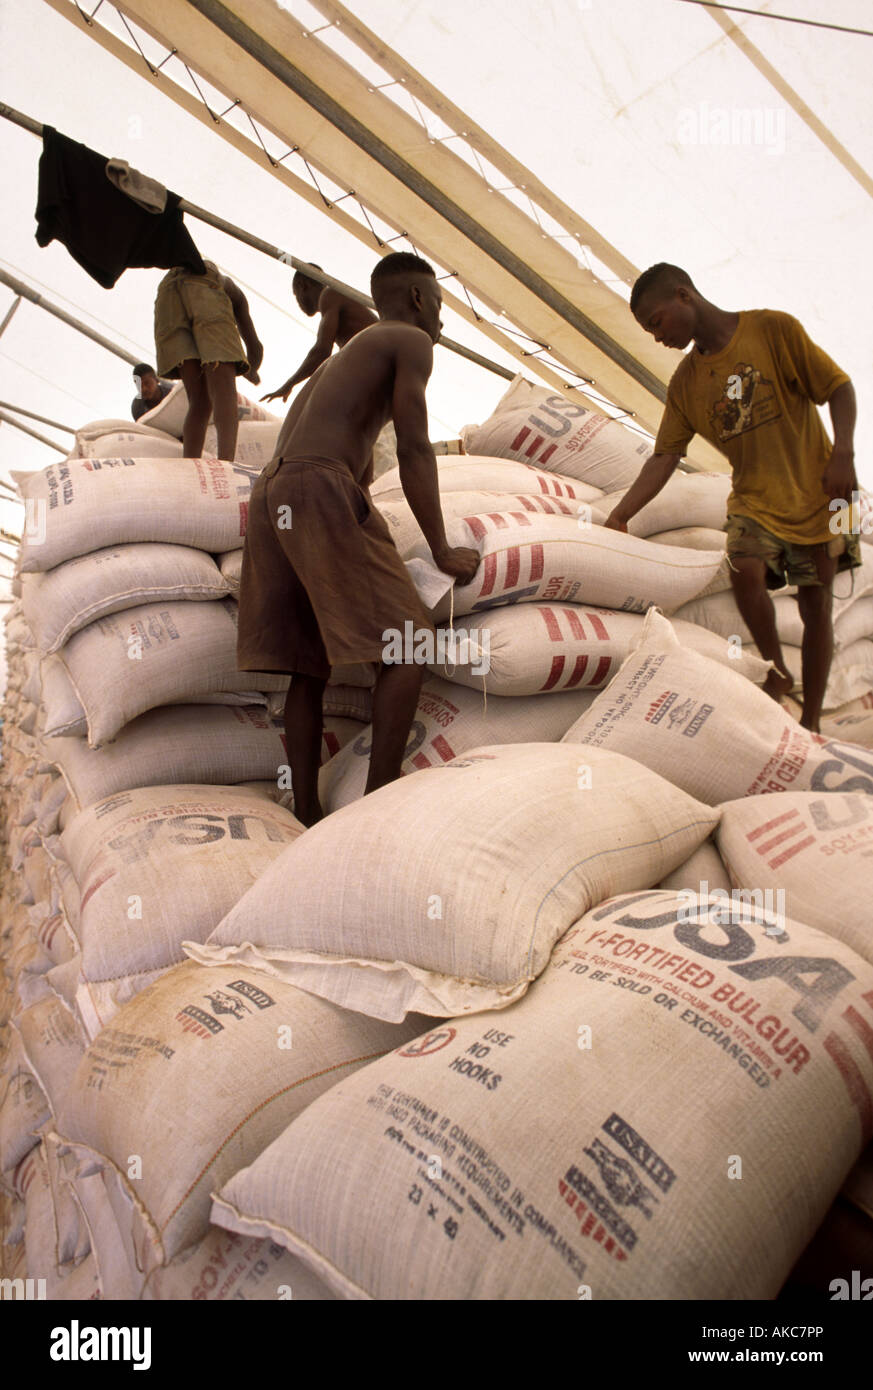 Local workers stack sacks of bulgar wheat in a United Nations aid warehouse in Zwedru Liberia - Stock Image